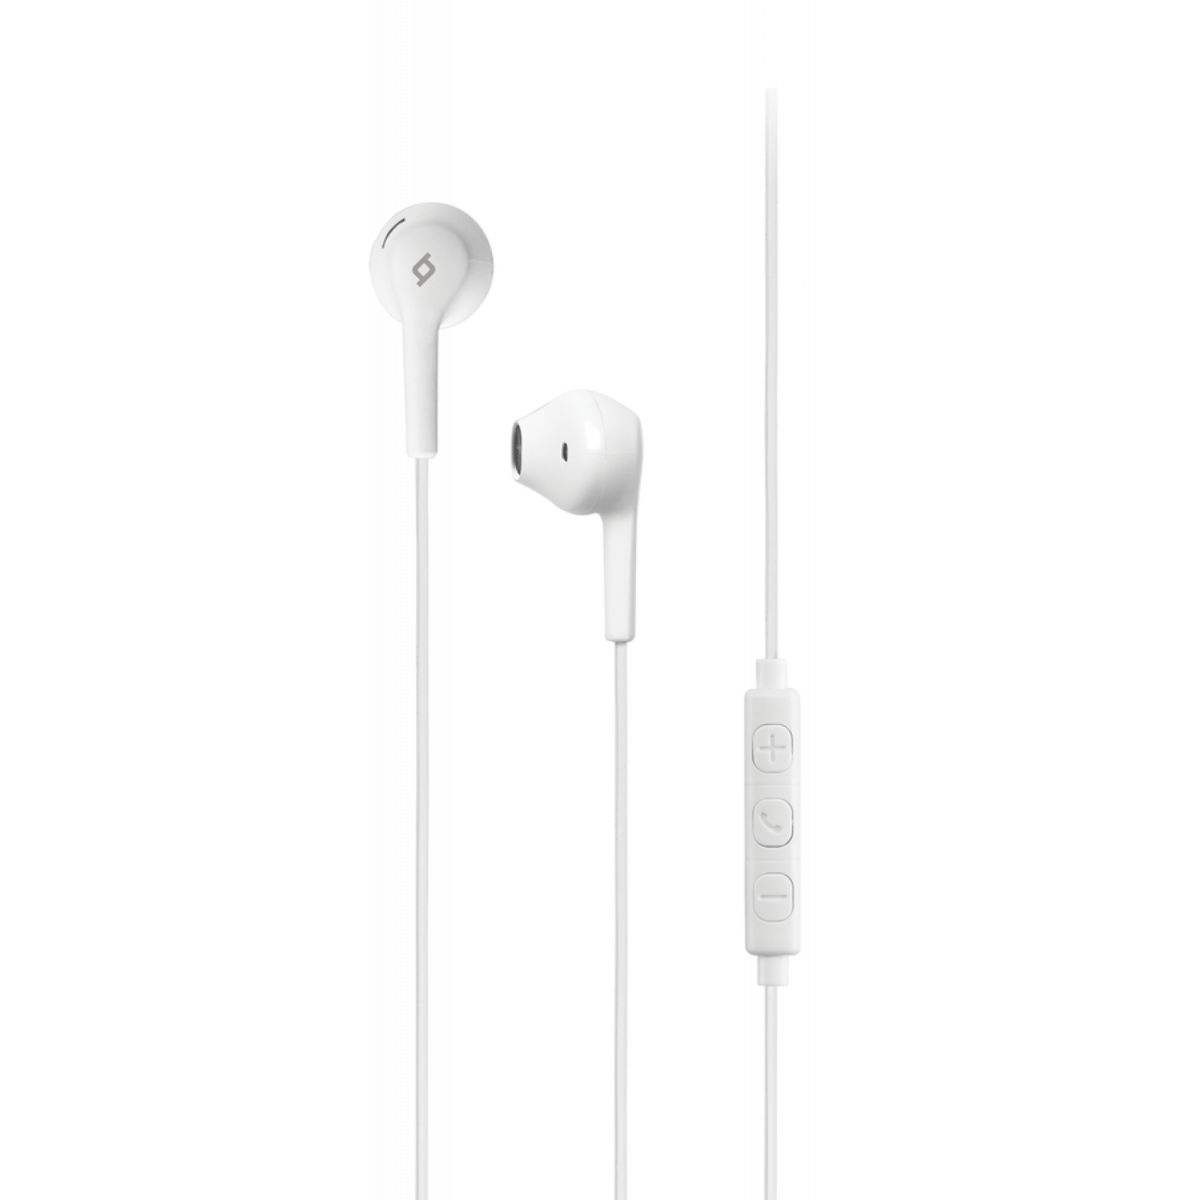 Слушалки RIO In-Ear Headphones with Built-in remote control - Бели, 117952